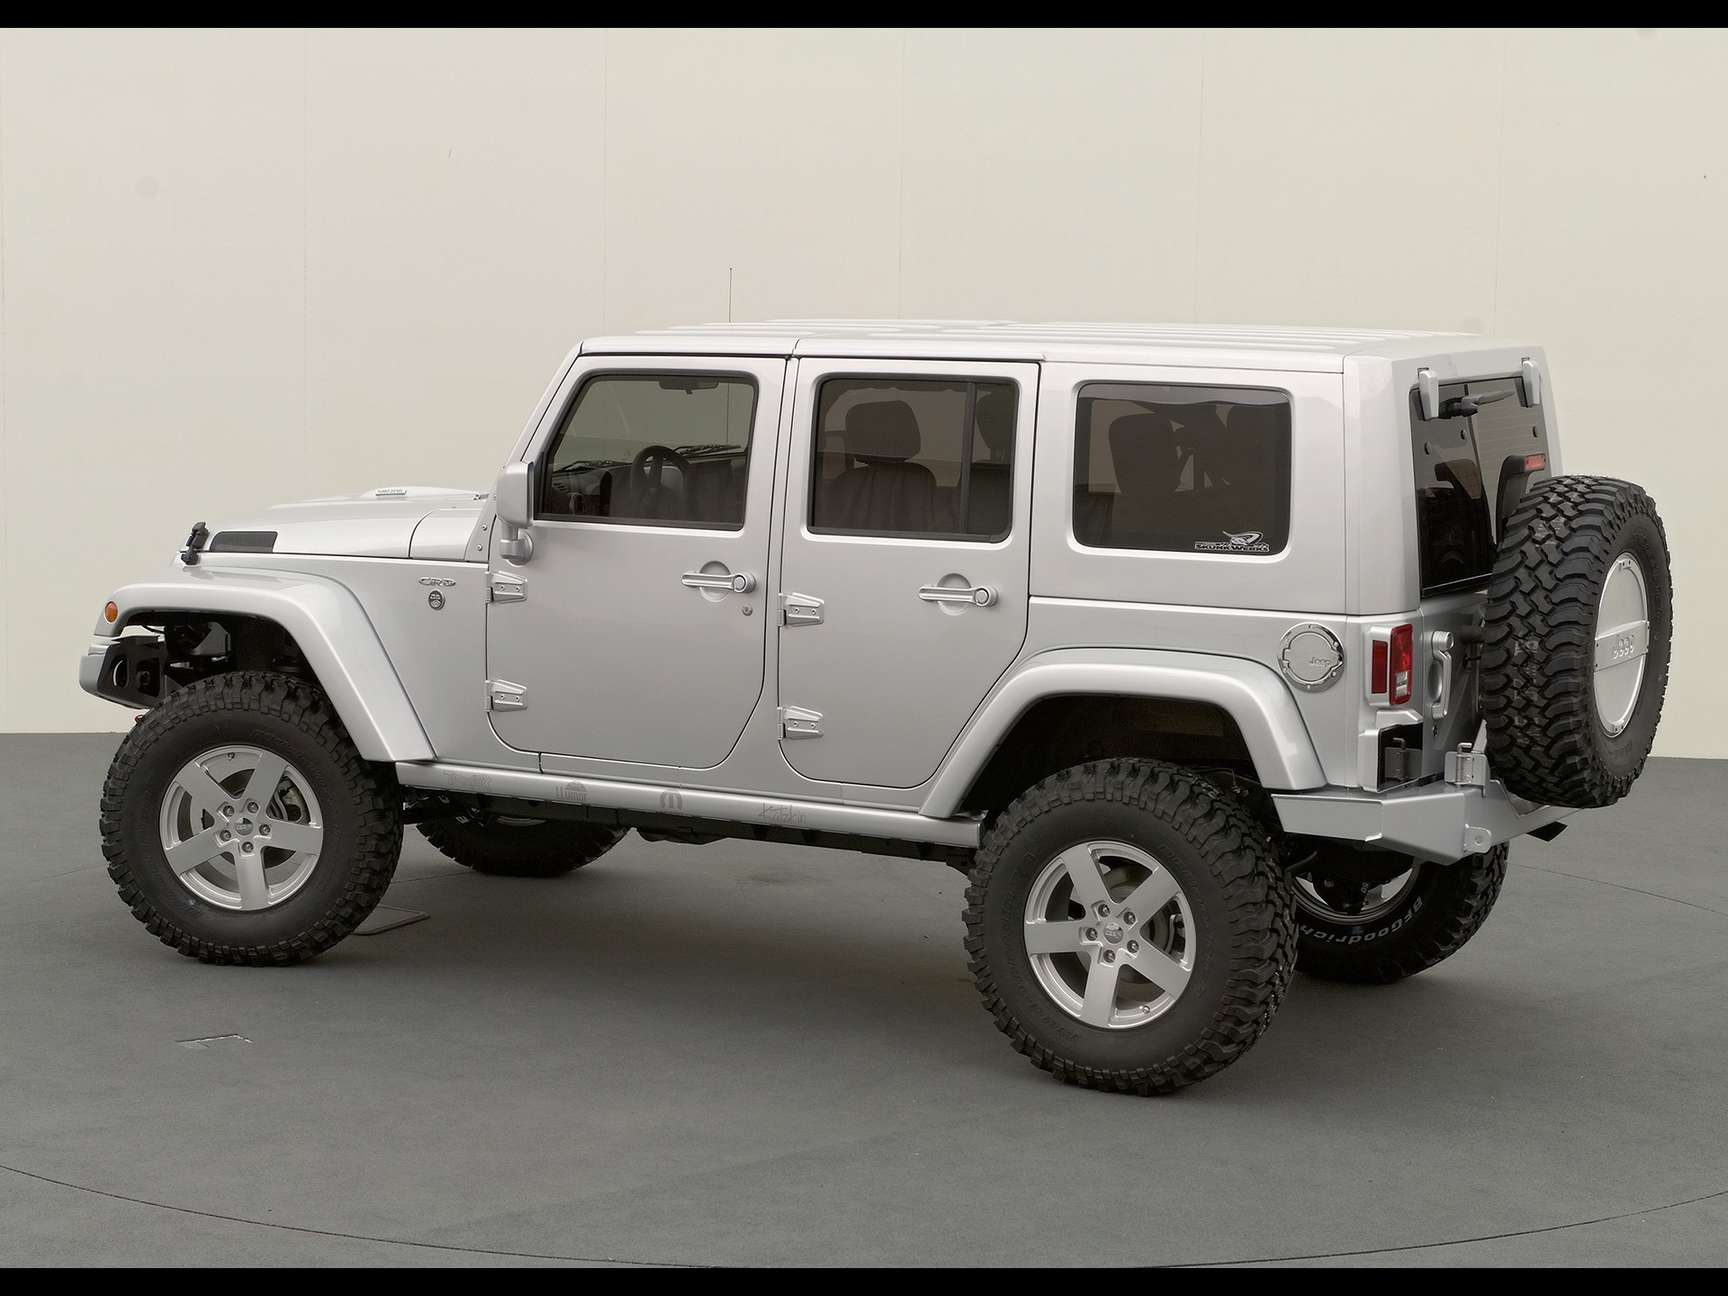 Jeep Wrangler Unlimited Rubicon #9205284